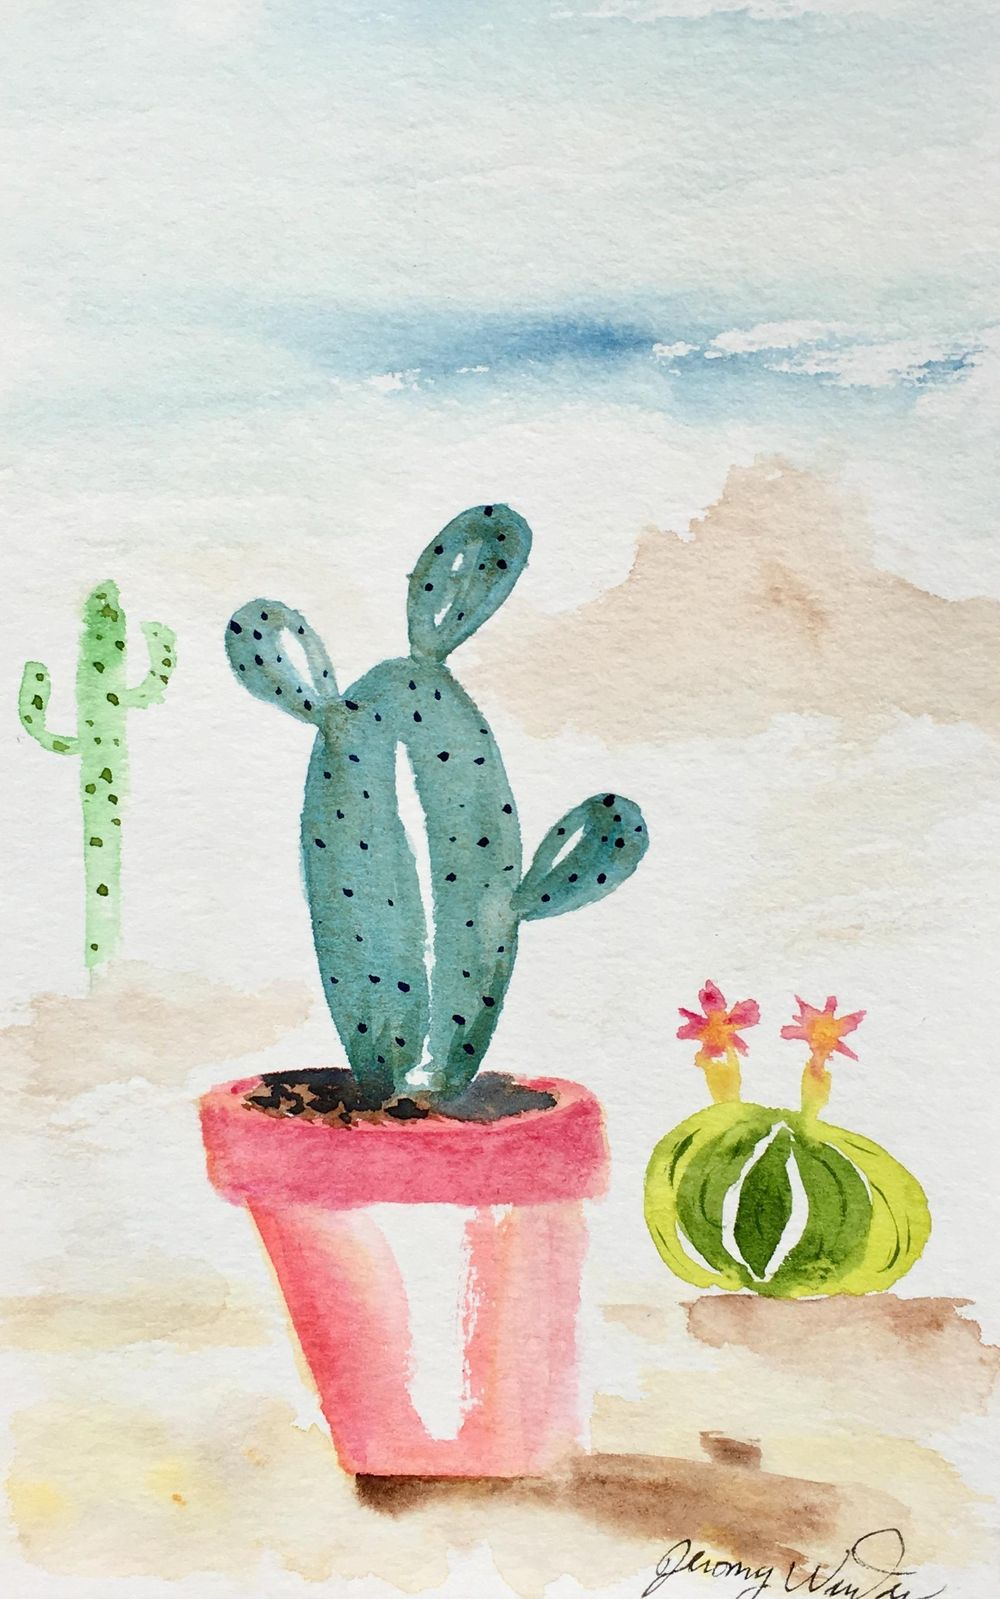 Prickly Cactus - image 2 - student project